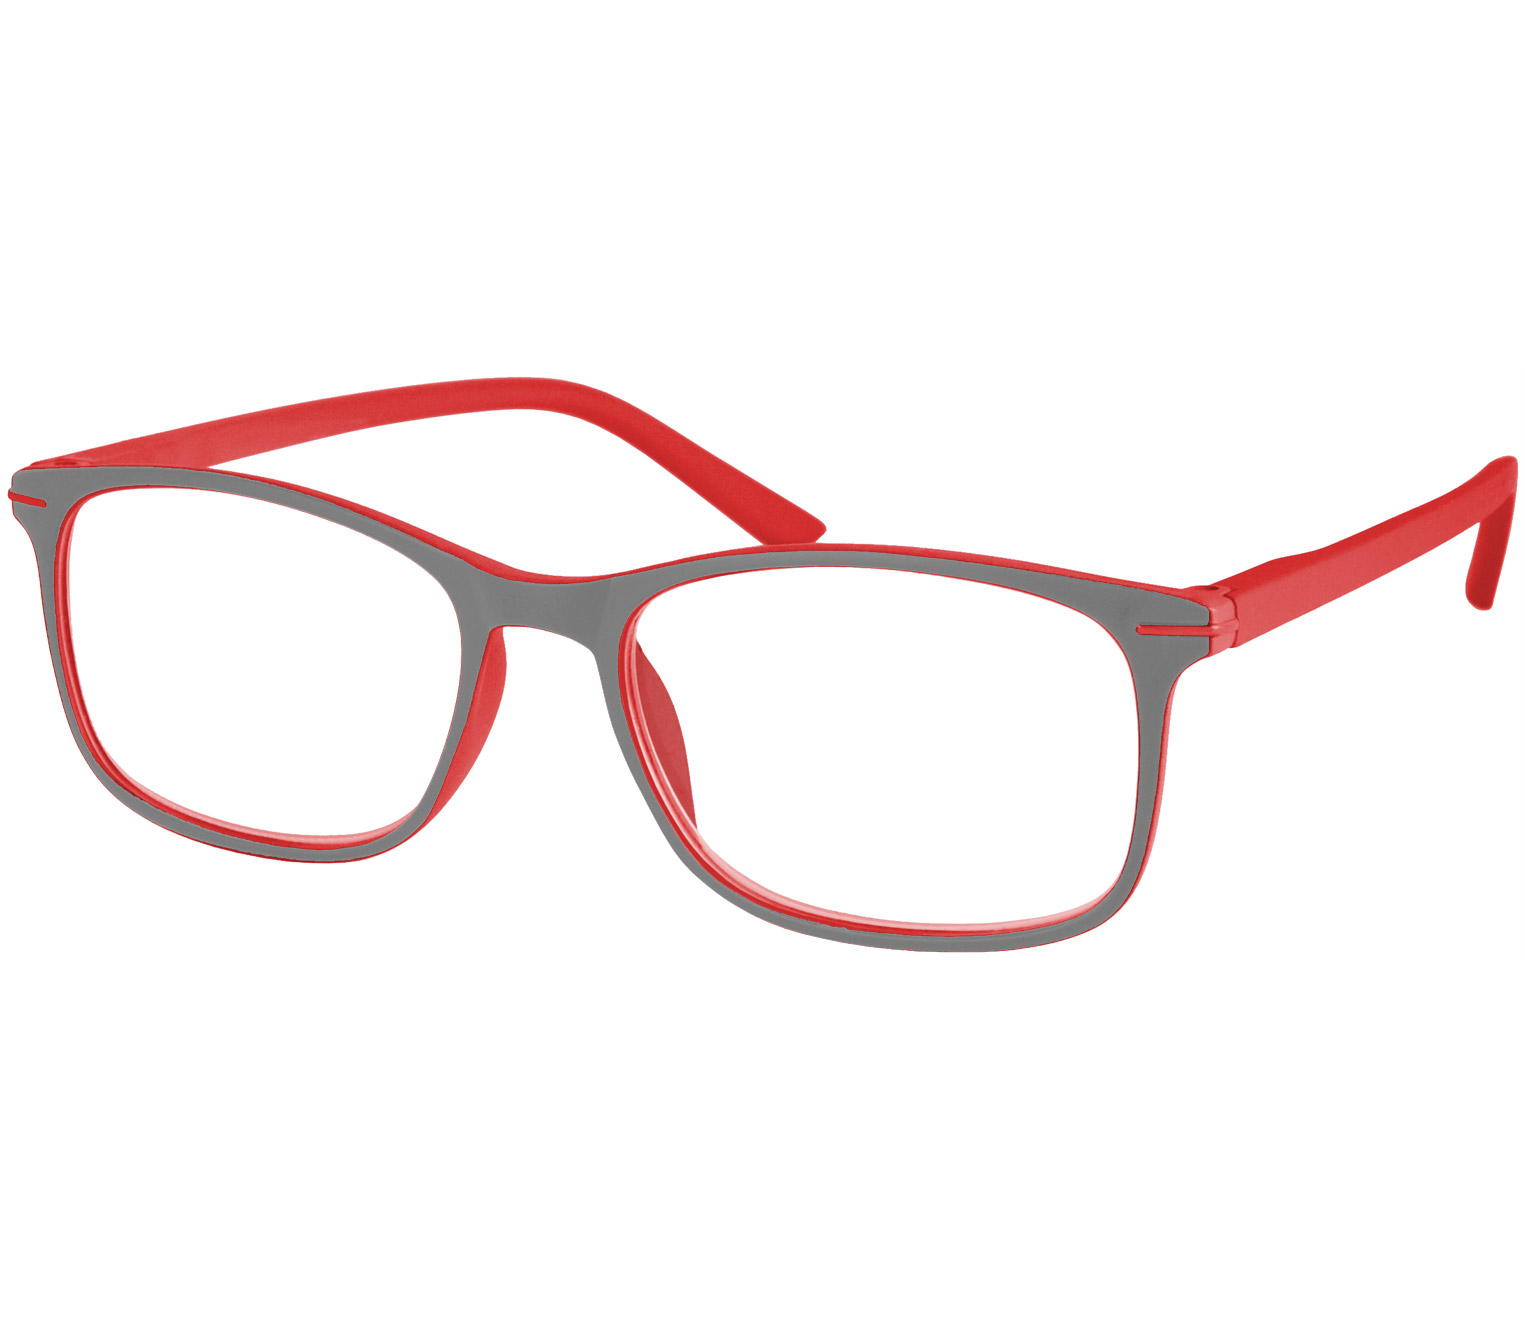 Main Image (Angle) - Jazz (Red) Classic Reading Glasses